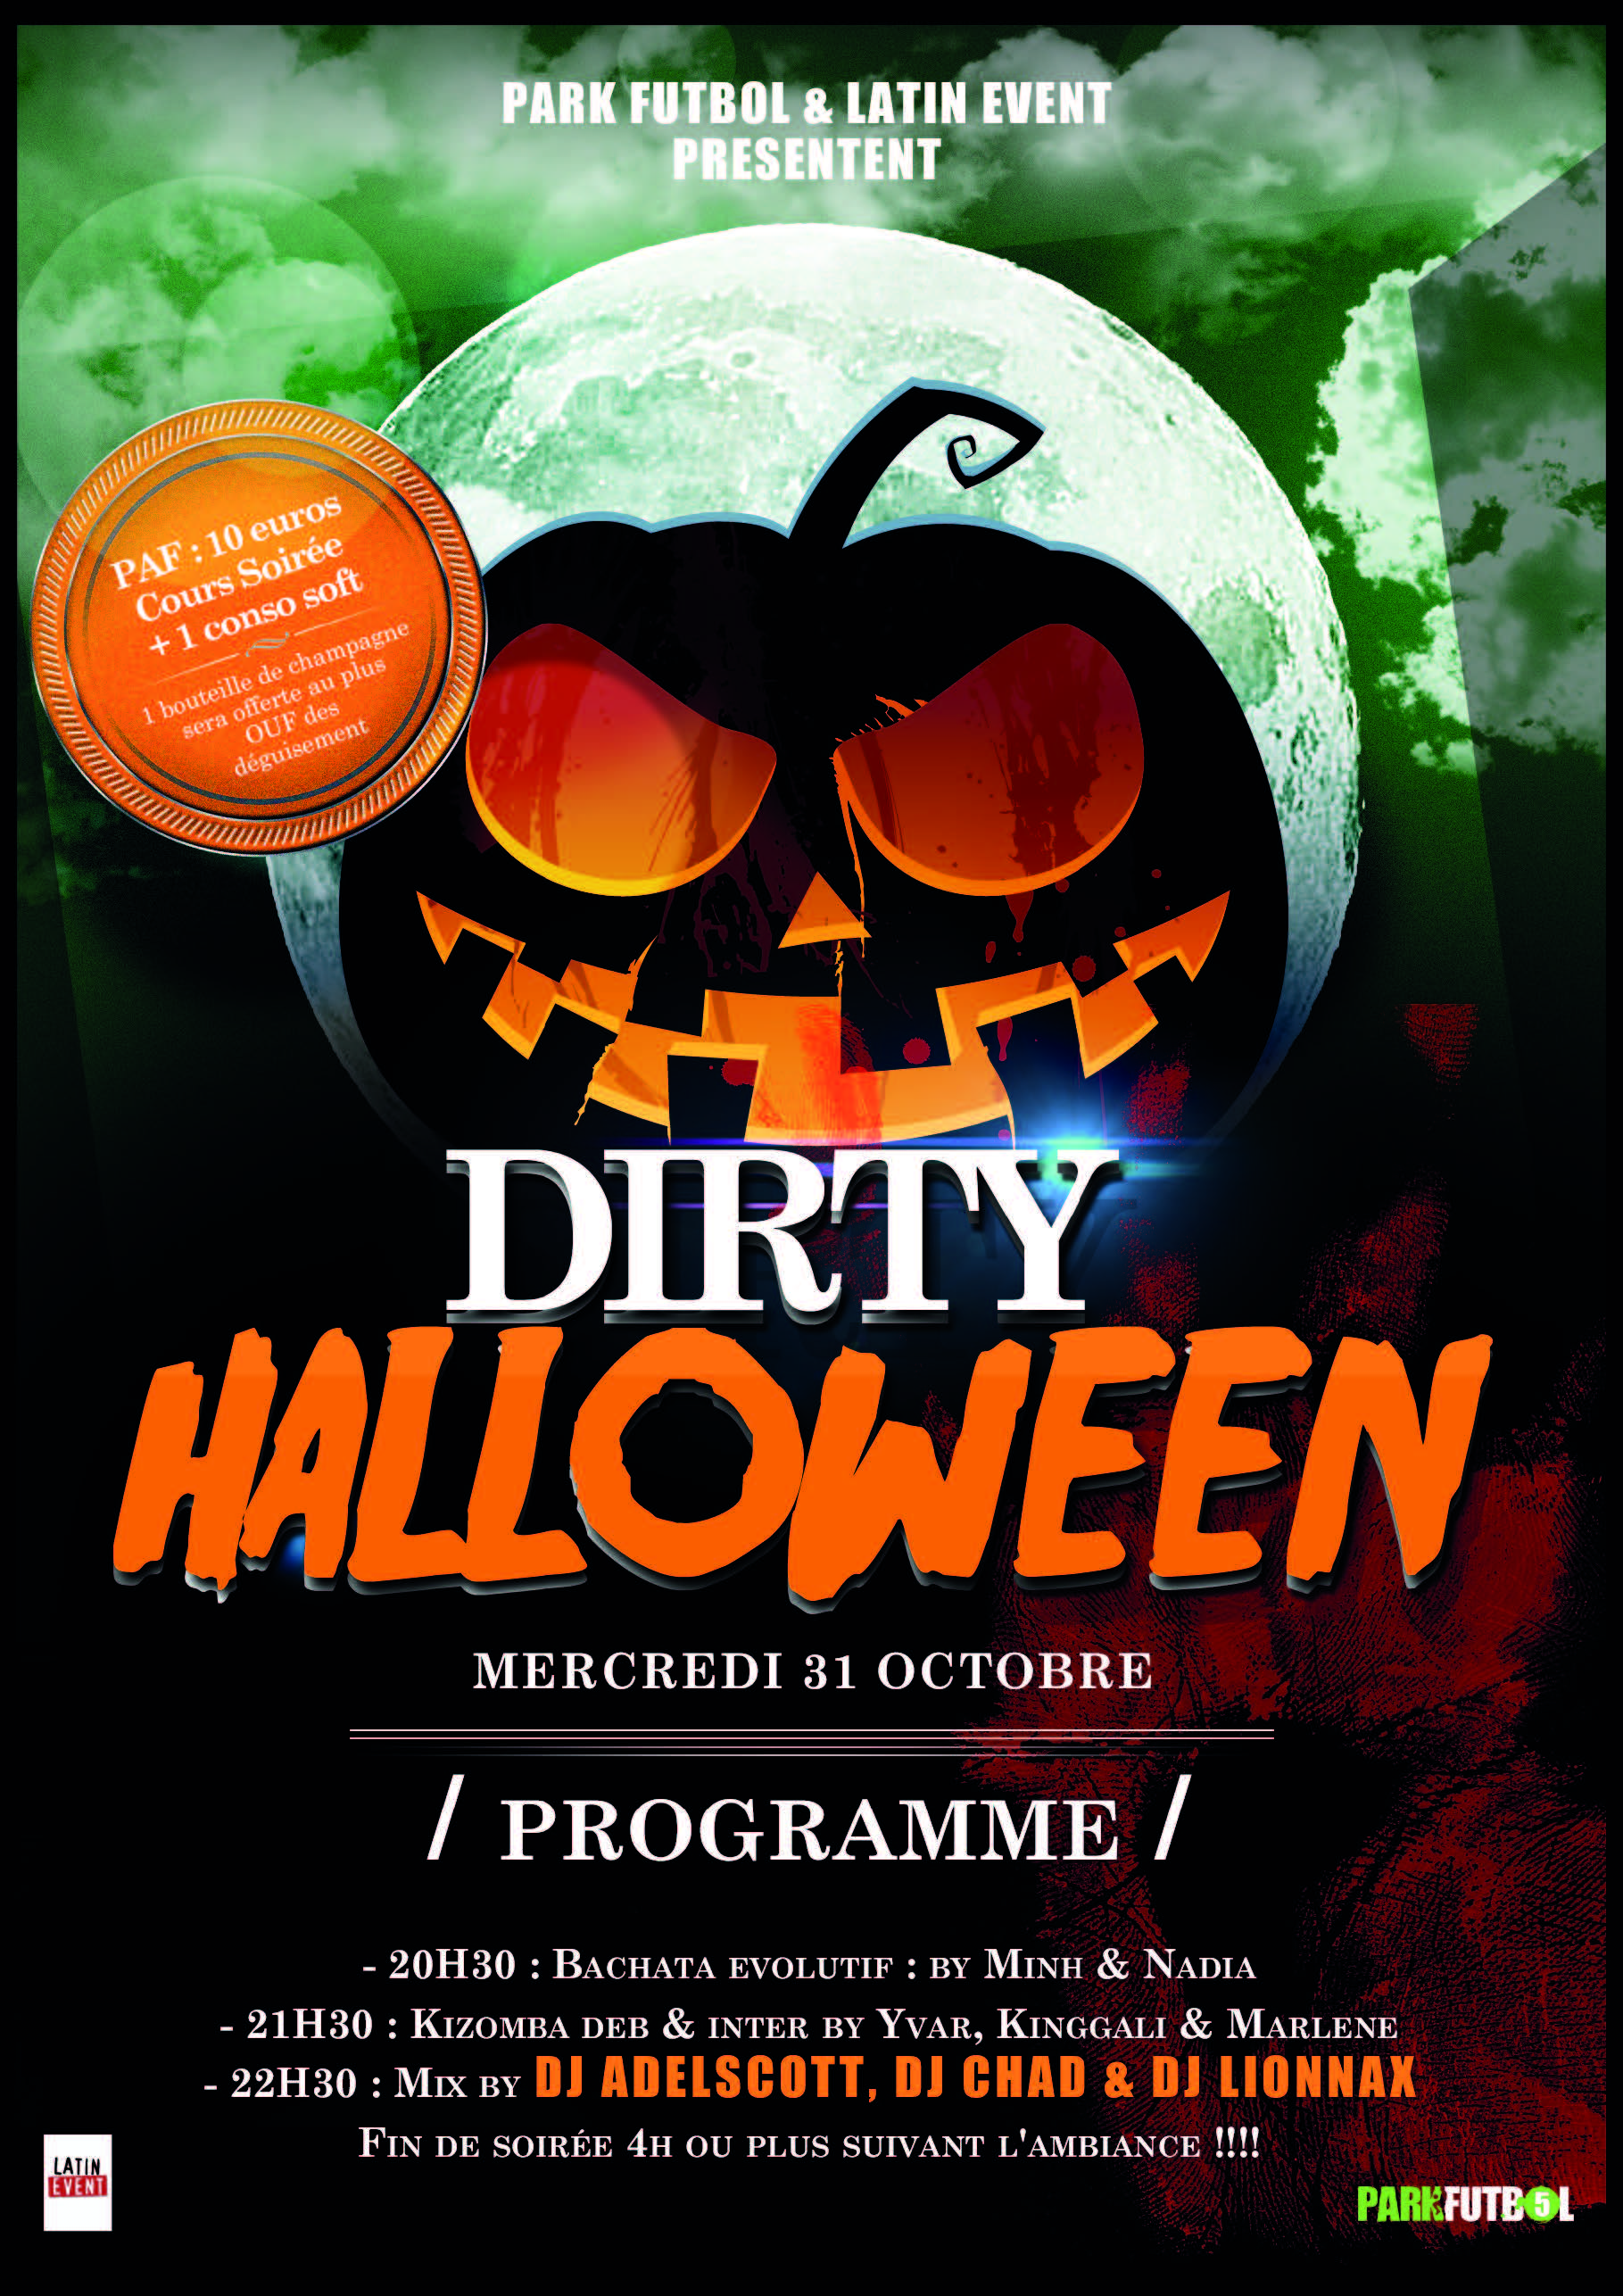 Dirty halloween  copie